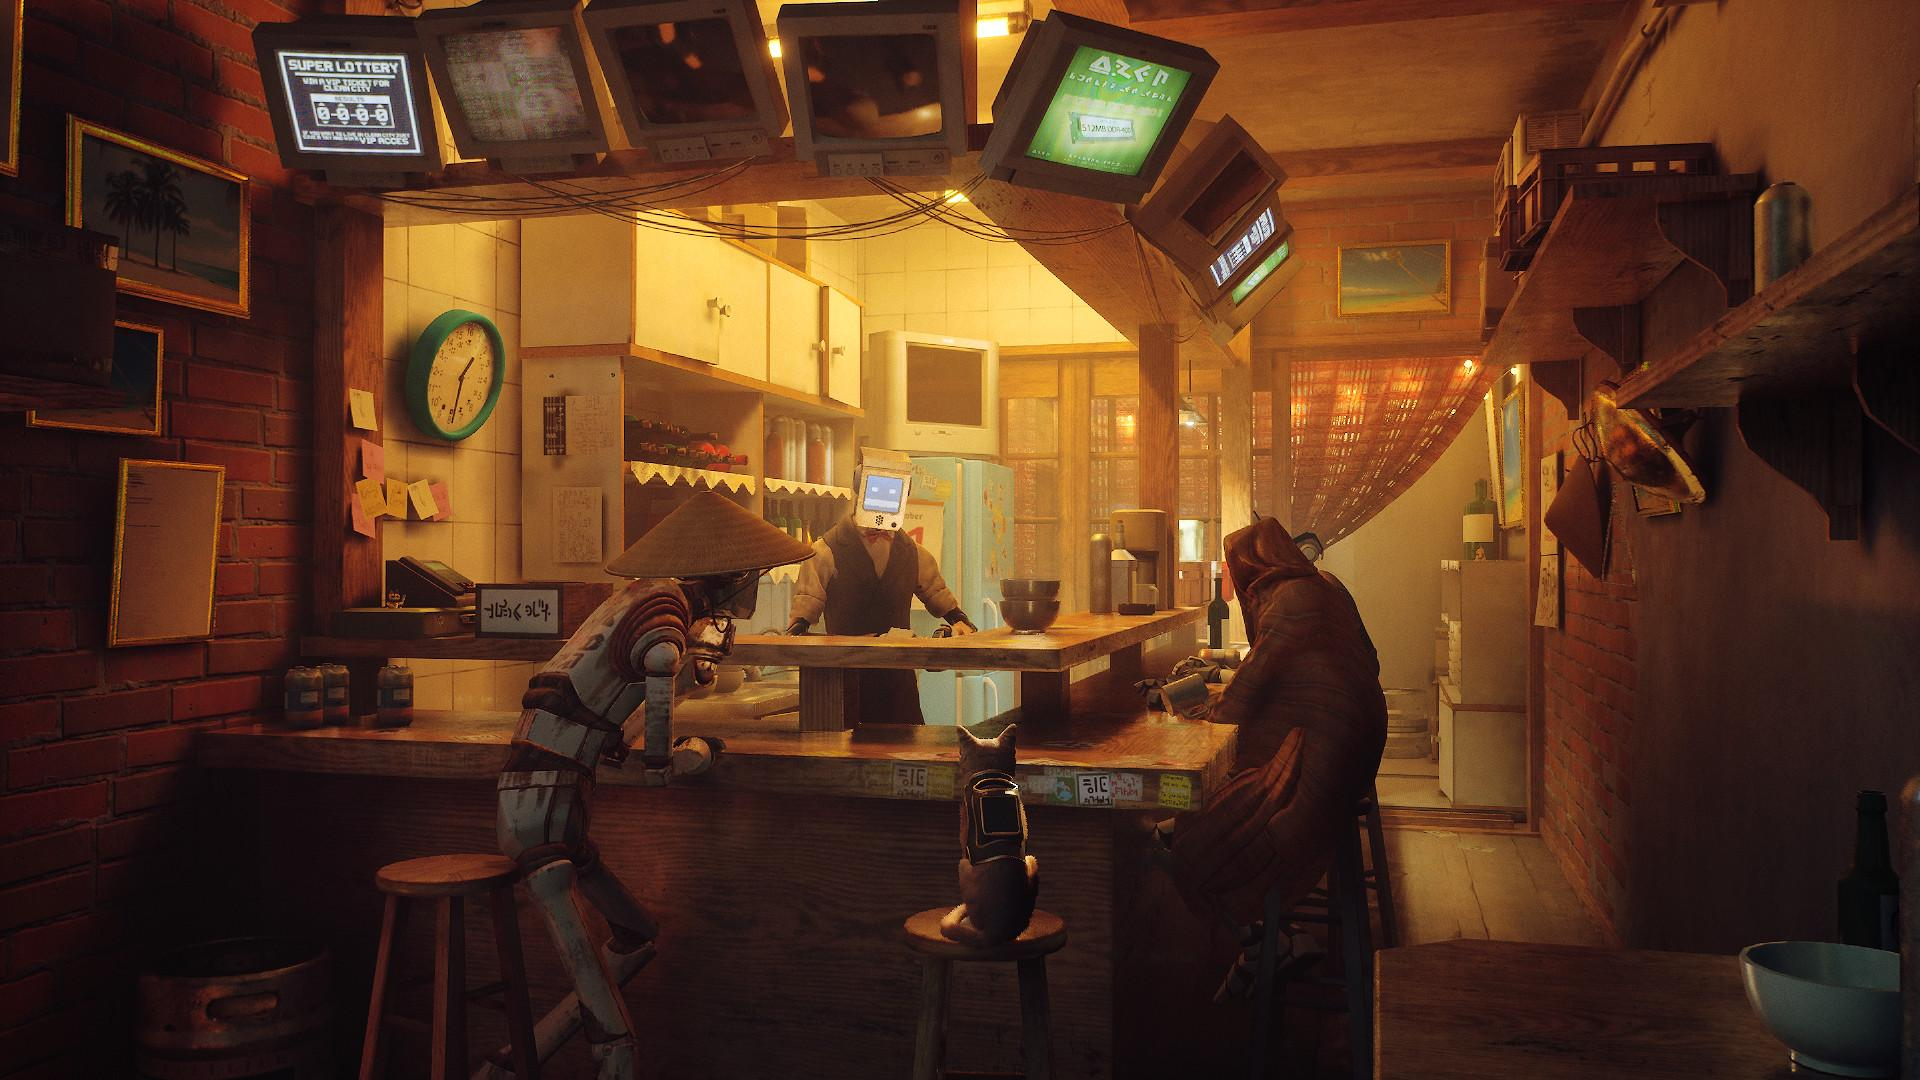 Stray is set in a futuristic city filled neon-lit alleys, abandoned residential areas and quaint establishments operated by sentient machines